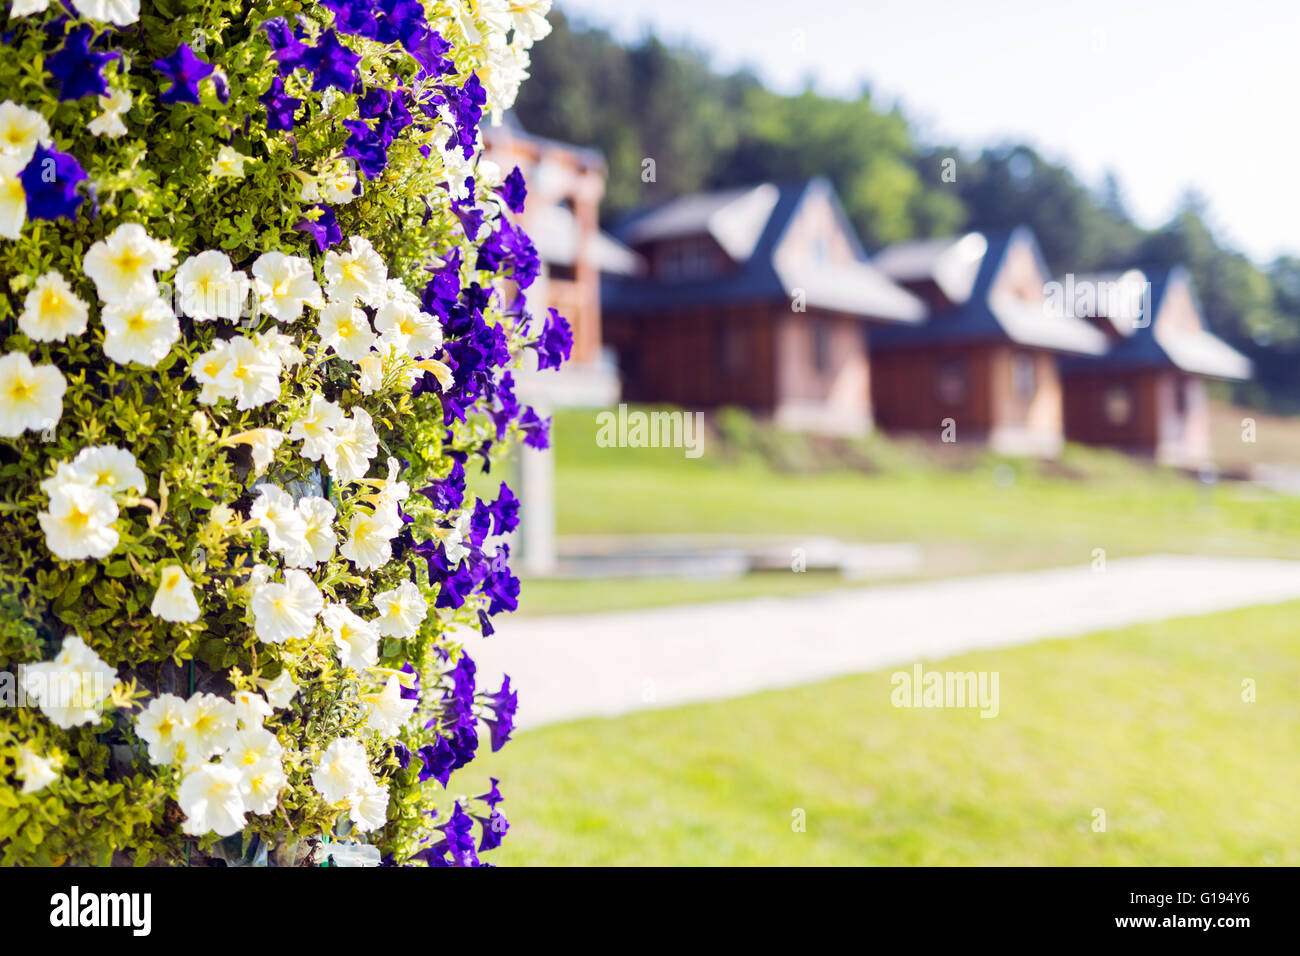 Picture of flowers and cottages in  nature on a summer day - Stock Image